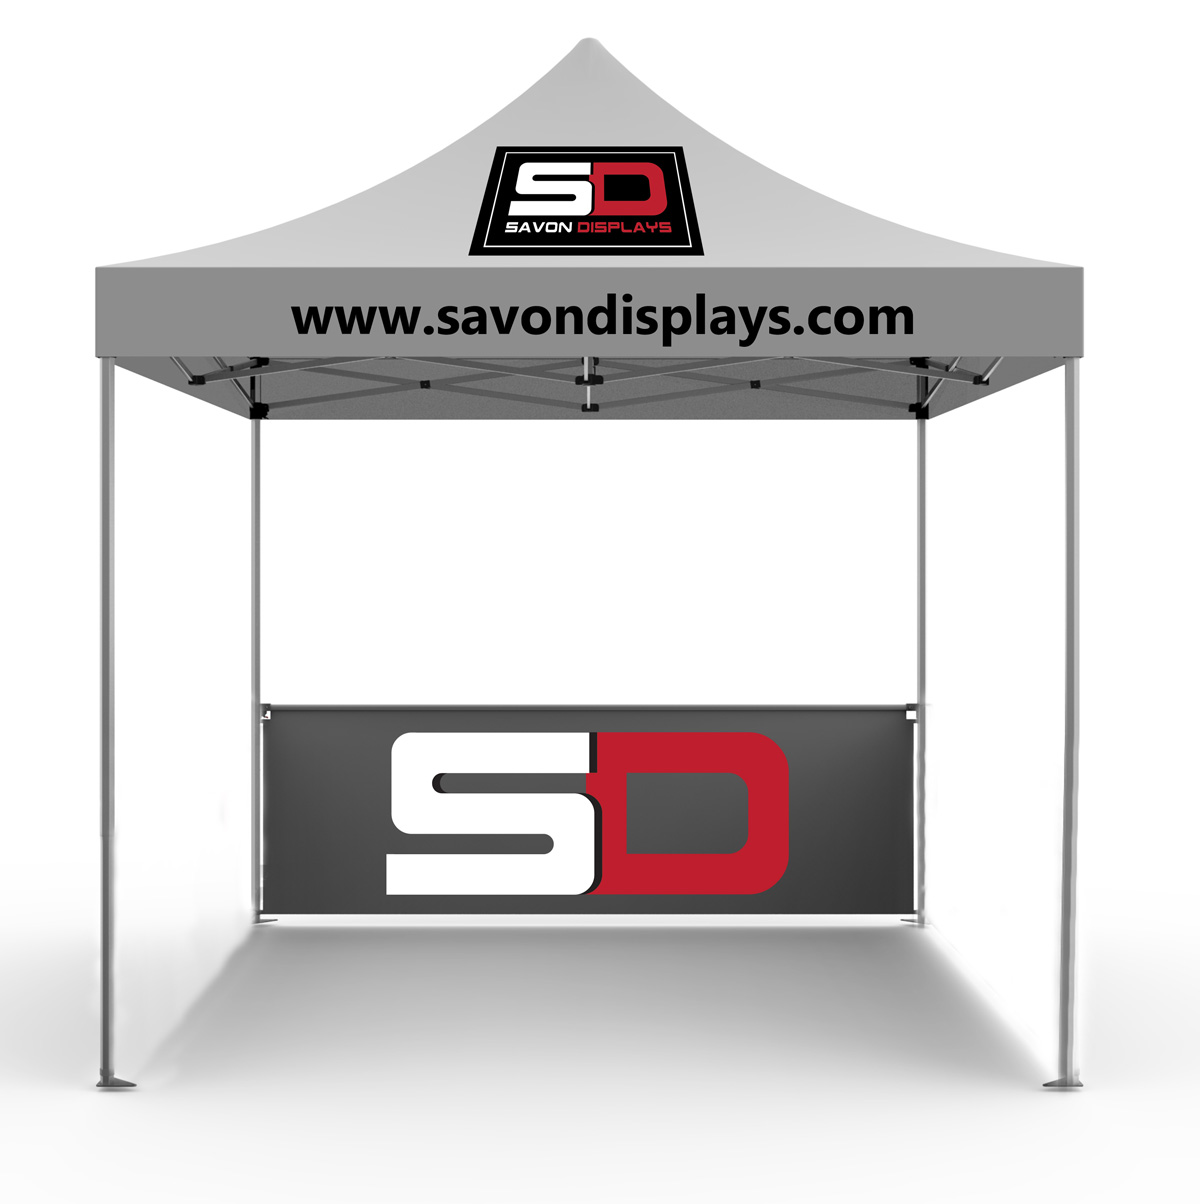 10 x 10 Popup Tent / Canopy with Back Wall.